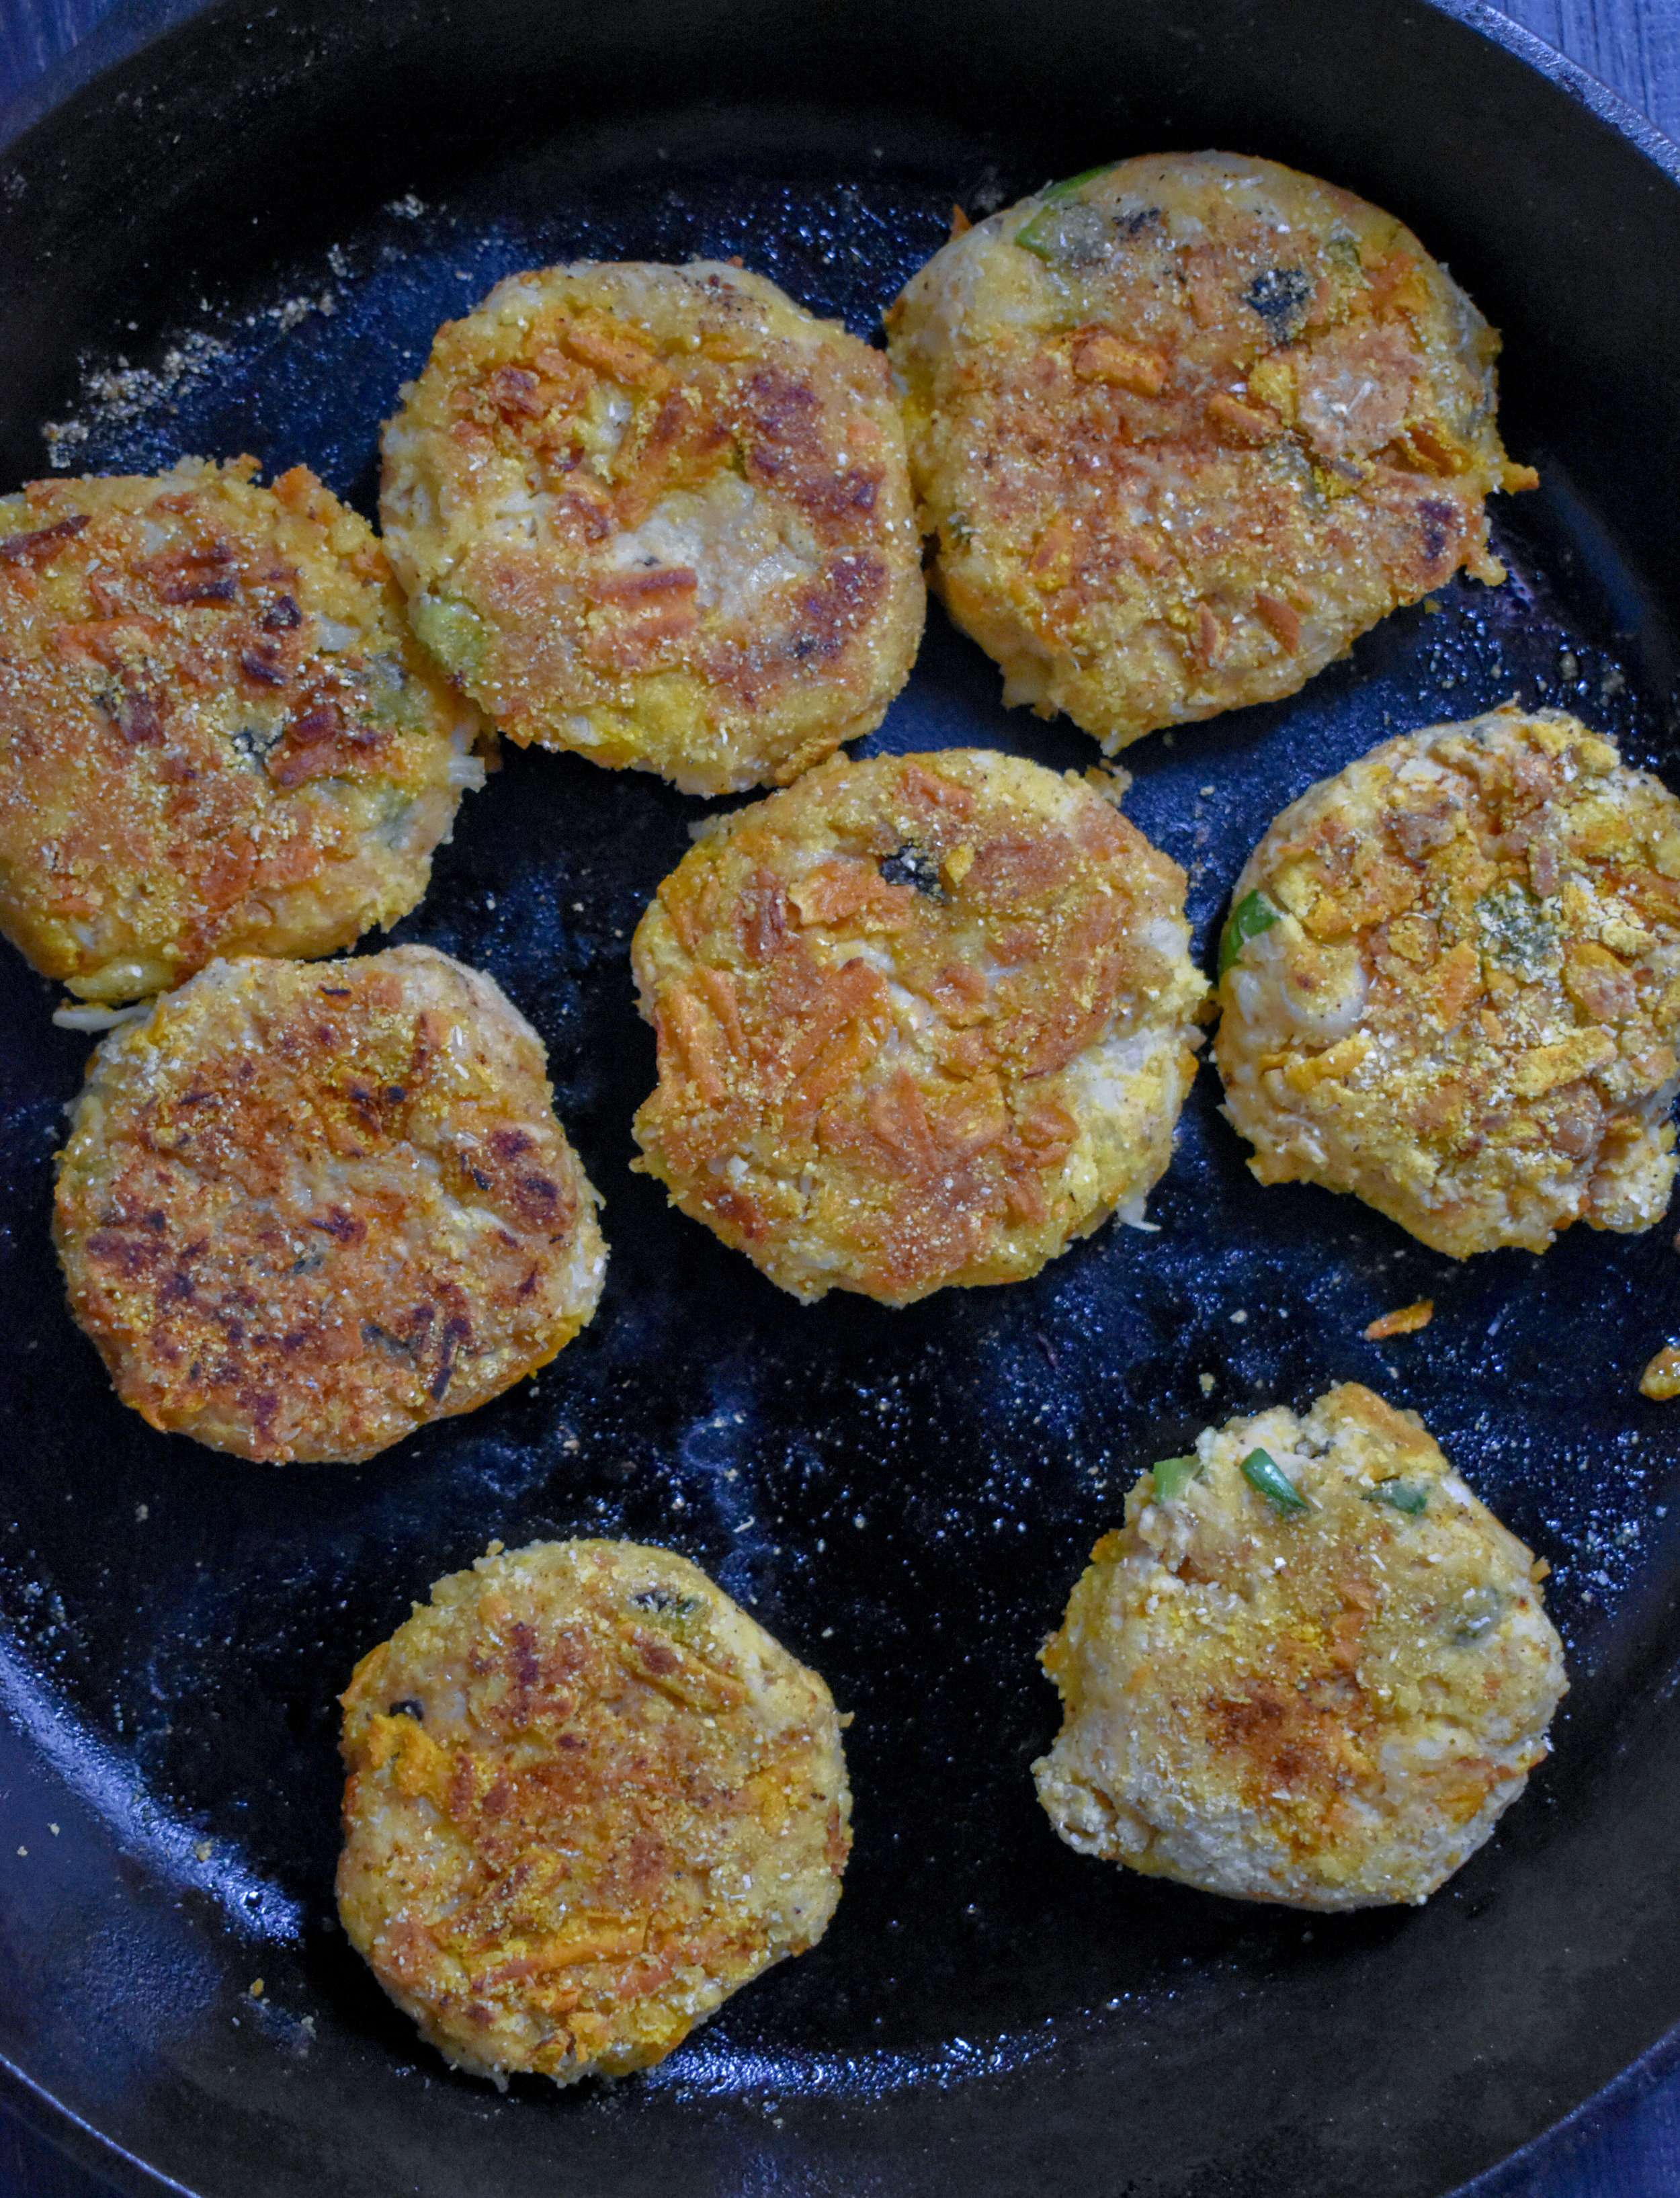 6. Add 2 tbl of walnut or other oil to a large castiron pan and heat over medium heat for about 2 minutes. Once hot, add patties and cook for 4 minutes on each side until golden brown.